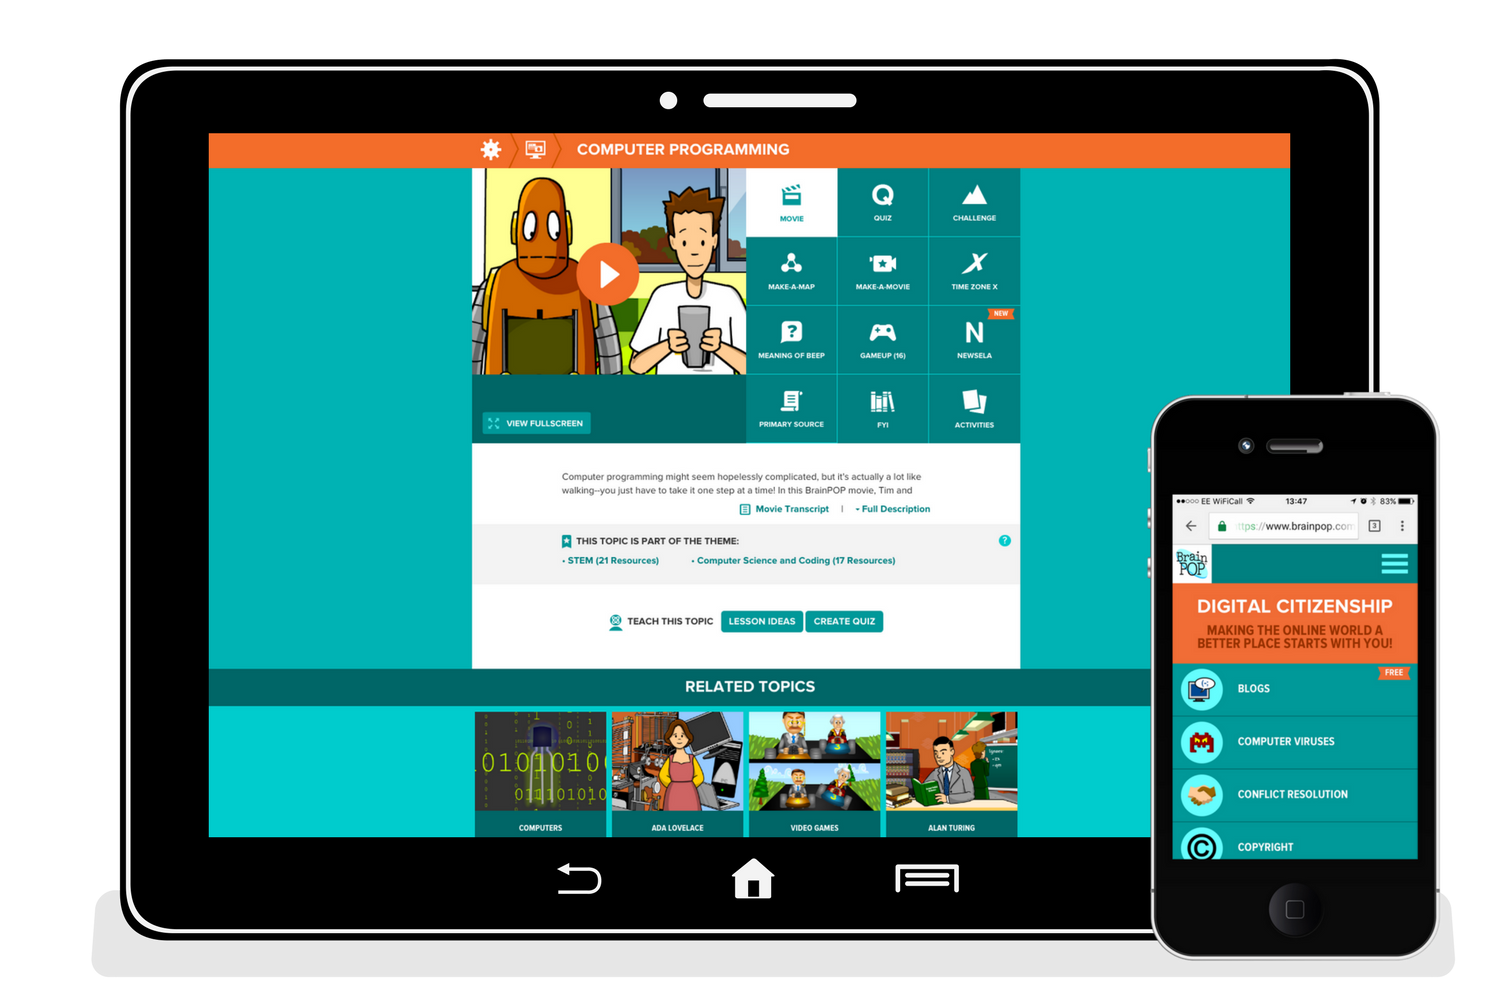 Let's talk tech - BrainPOP has been designed from the ground up to be fully mobile ready. We don't care what devices you use, we only care that you can deliver learning anywhere at anytime.Are you a Google school? You can integrate your BrainPOP subscription for single sign-on through G Suite for Education!Google Marketplace apps are available for both BrainPOP and BrainPOP Jr. The apps offer convenient single sign-on and My BrainPOP account provisioning.